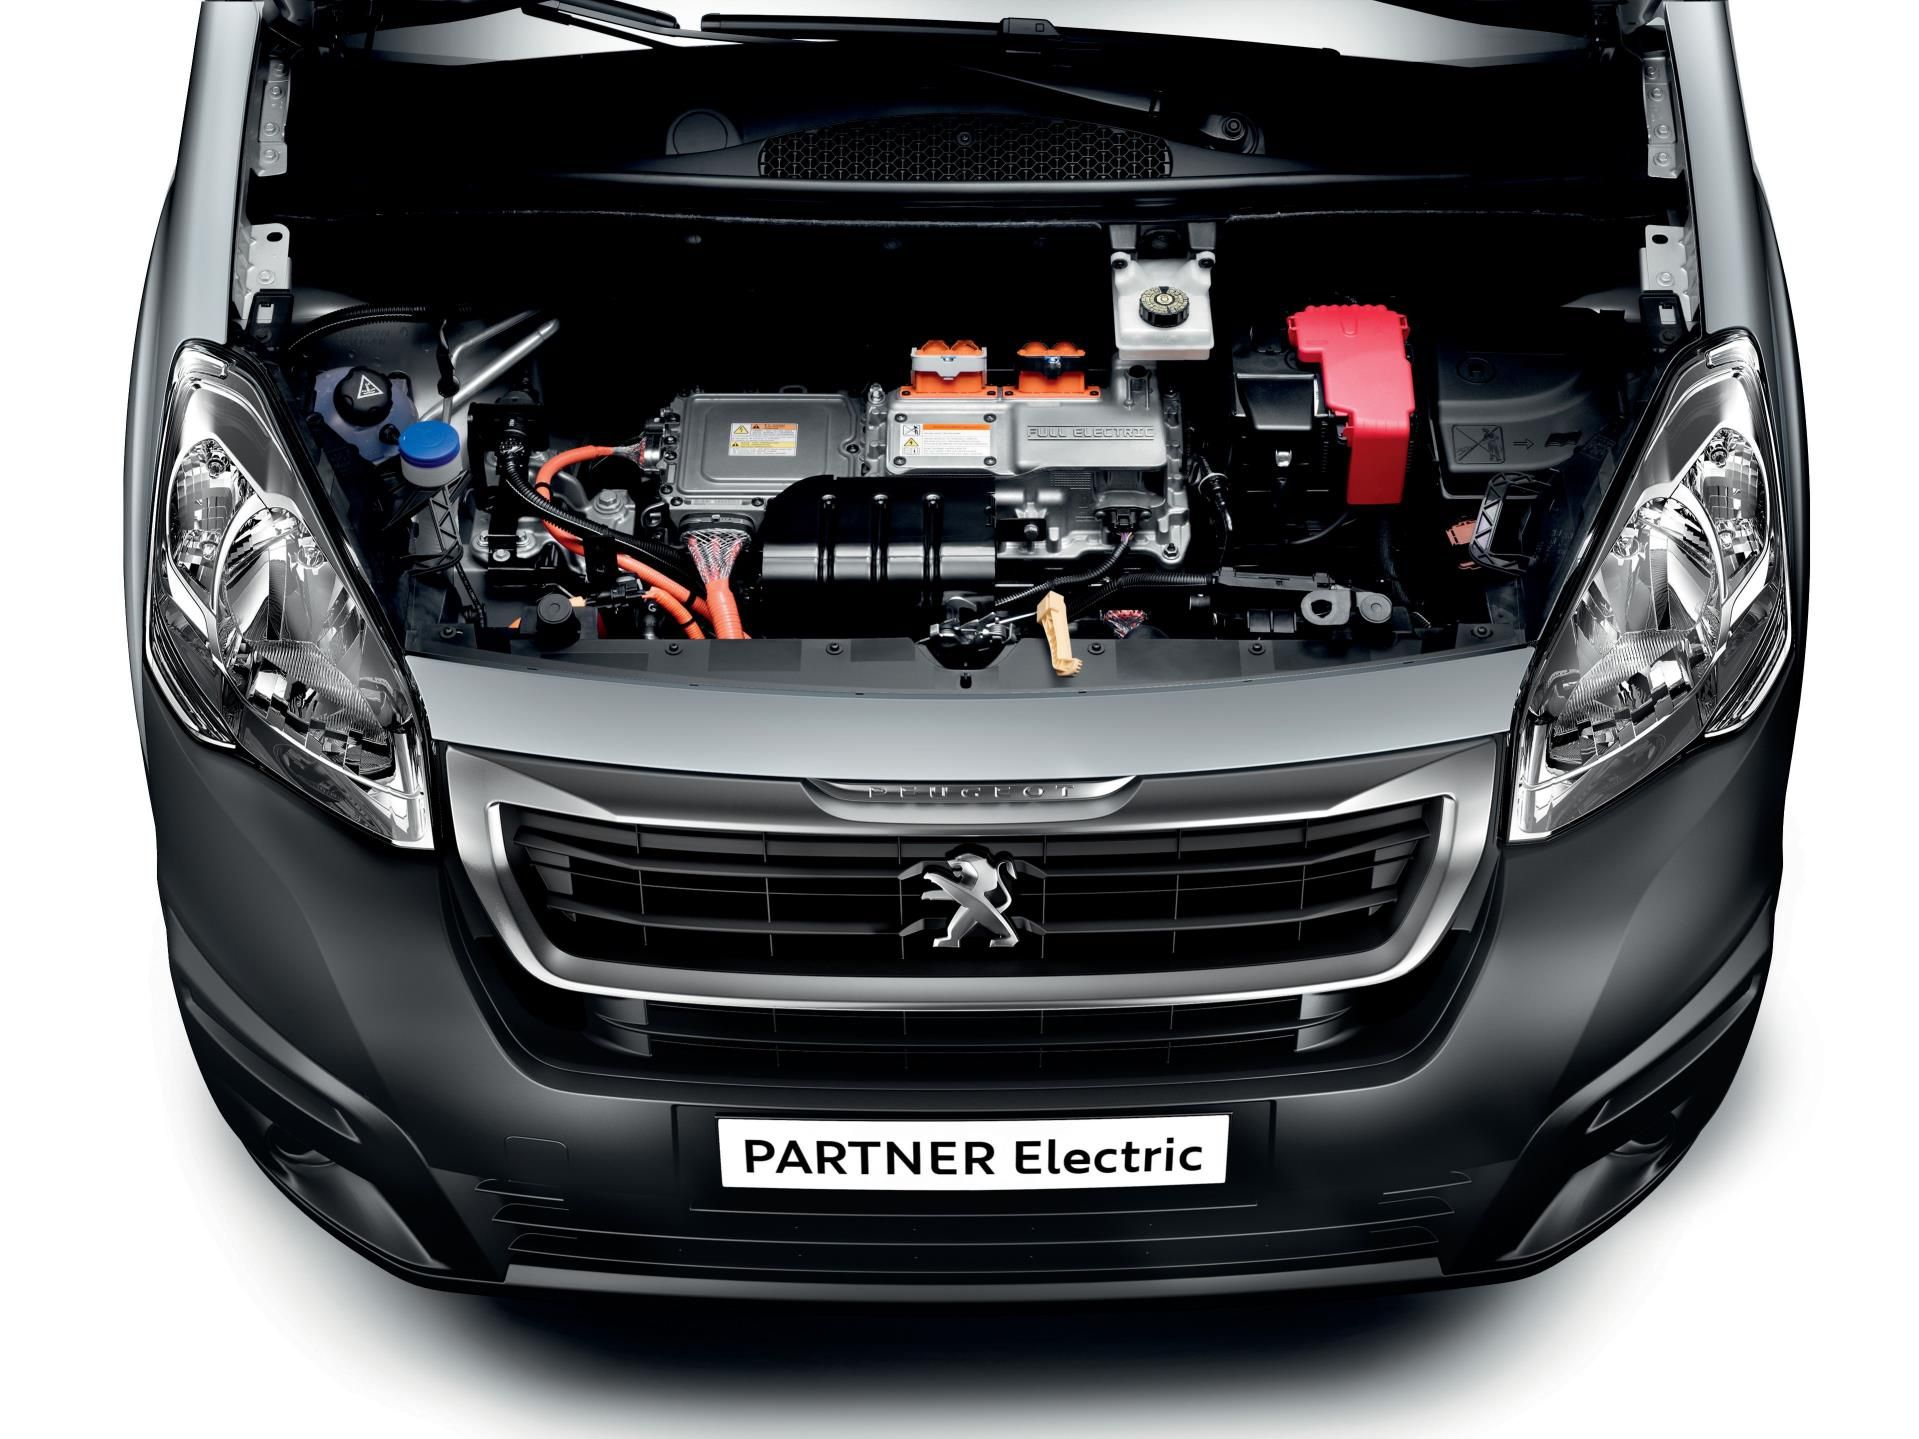 ROYAL MAIL SIGNS AGREEMENT WITH PEUGEOT TO PURCHASE 100